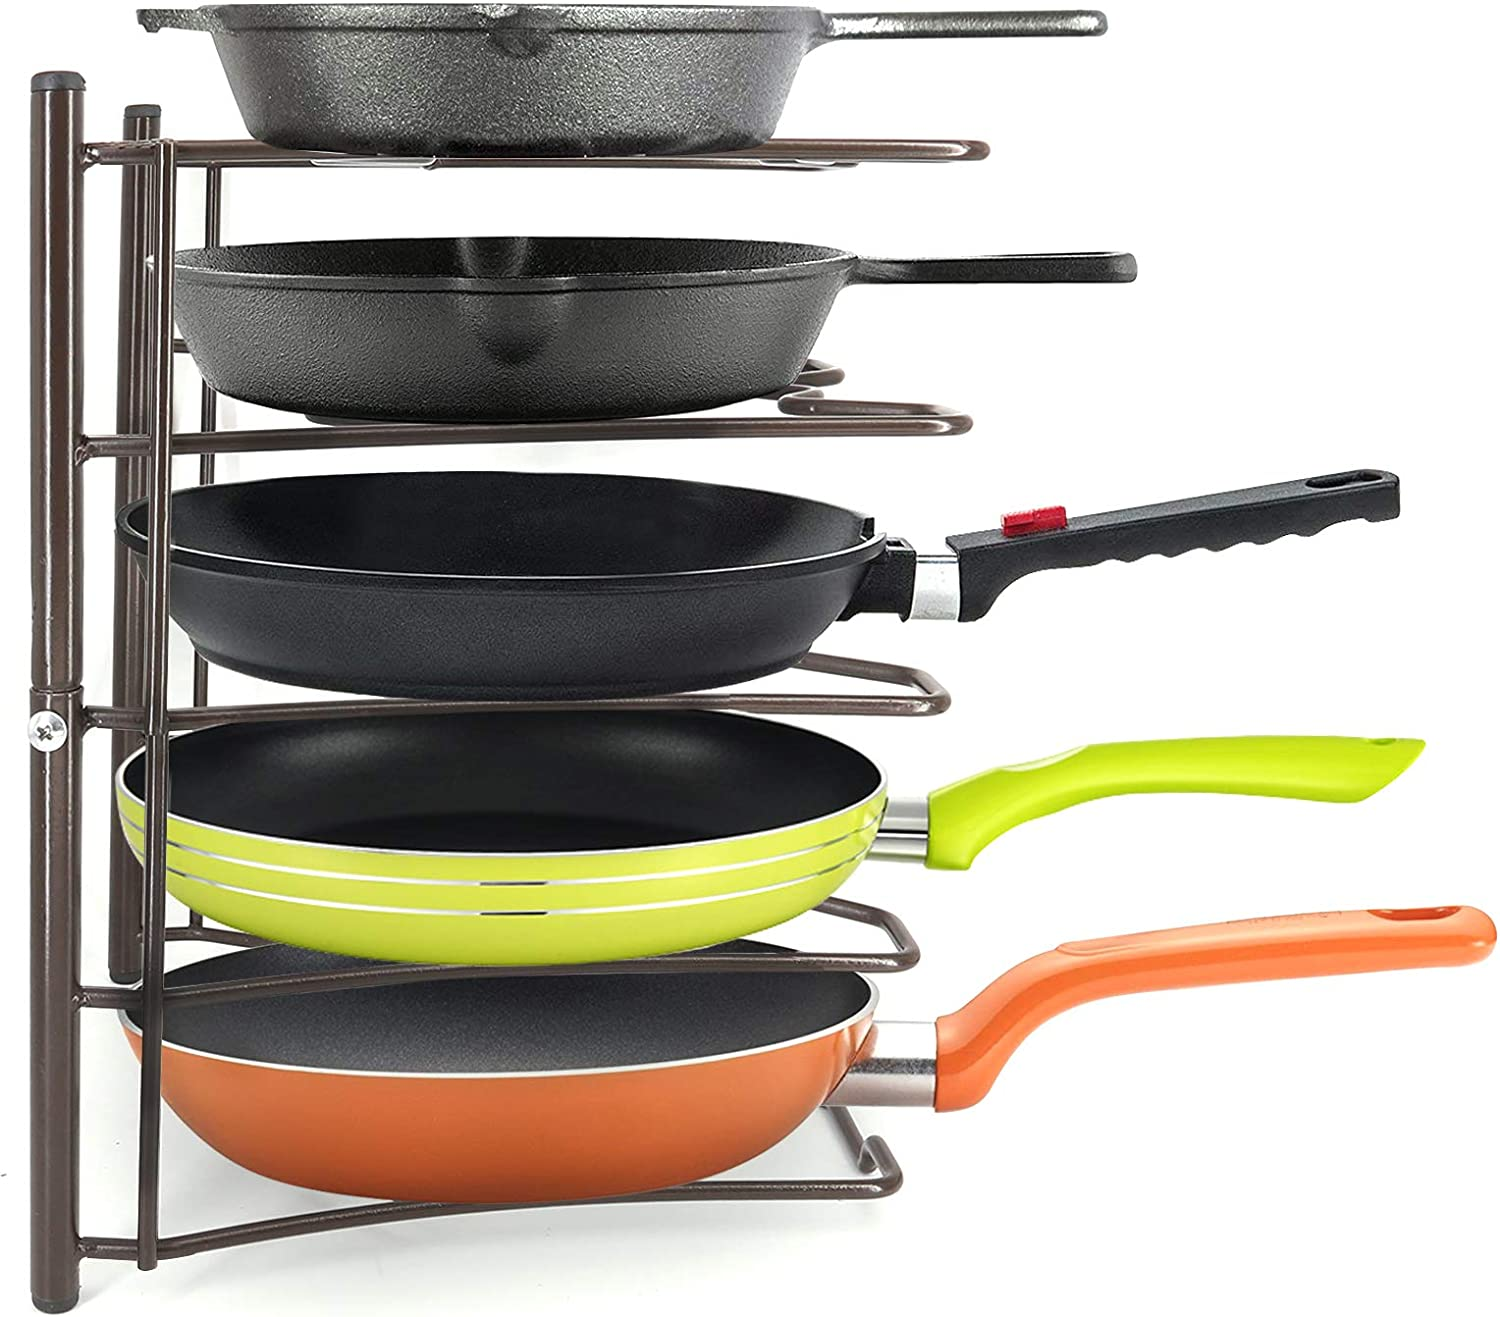 Kitchen Cabinet Cookware Organizer Rack Lid Hodlder for Pans, Pots, Lids and Cast Iron,Vertical or Horizontal Placement, Bronze(Assembly Required)